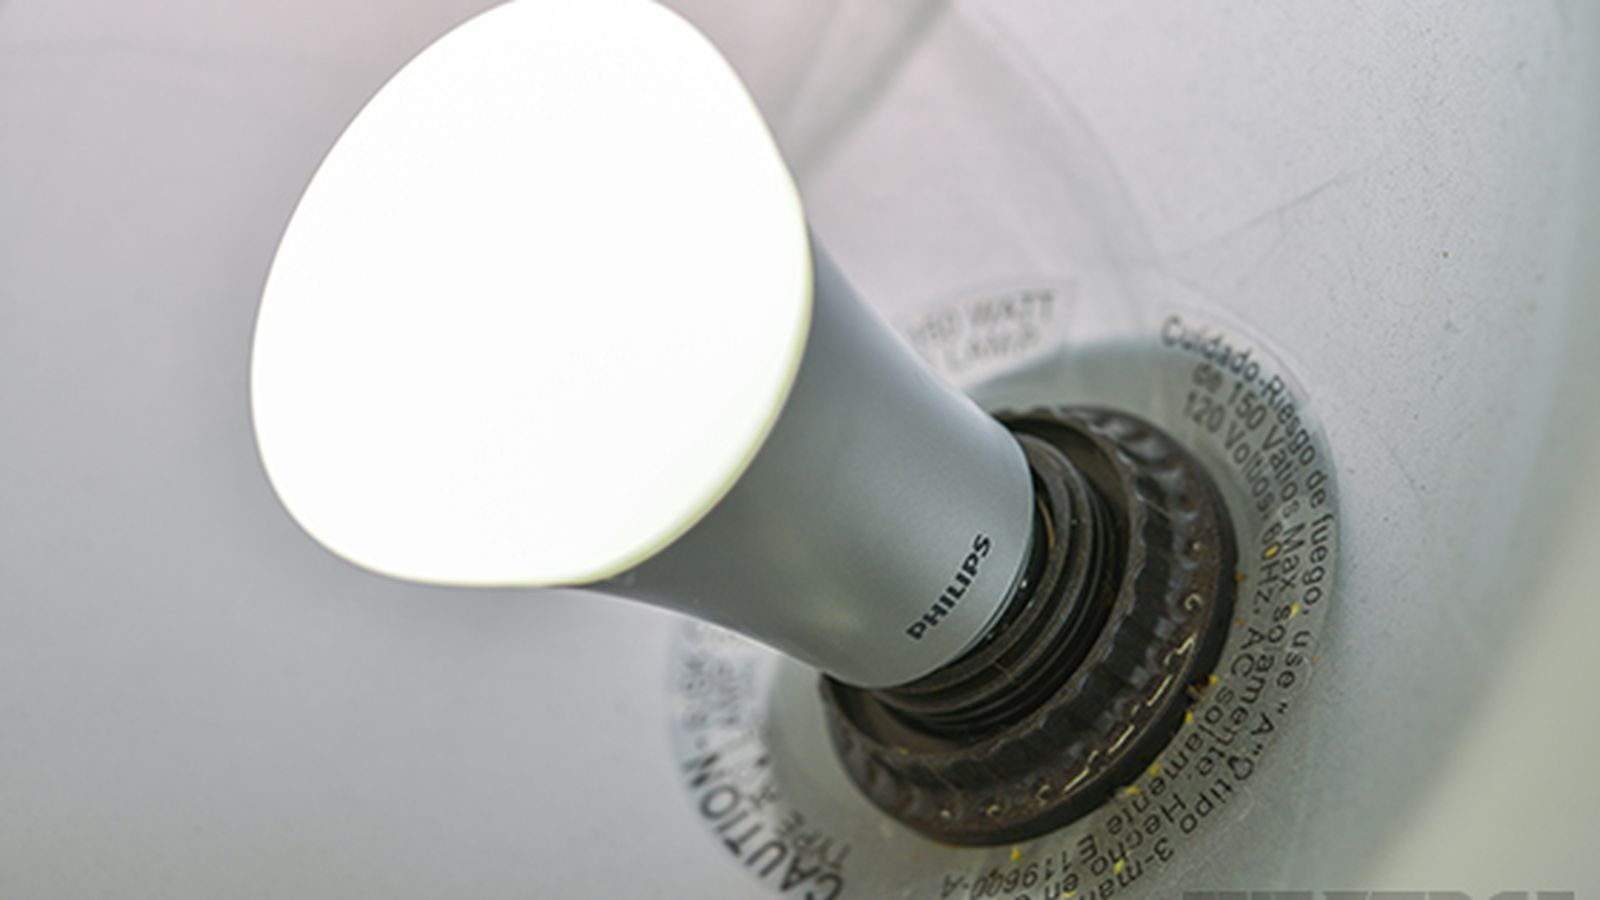 Bathroom Light Keeps Burning Out led led me astray: the home lighting misadventure that brought me